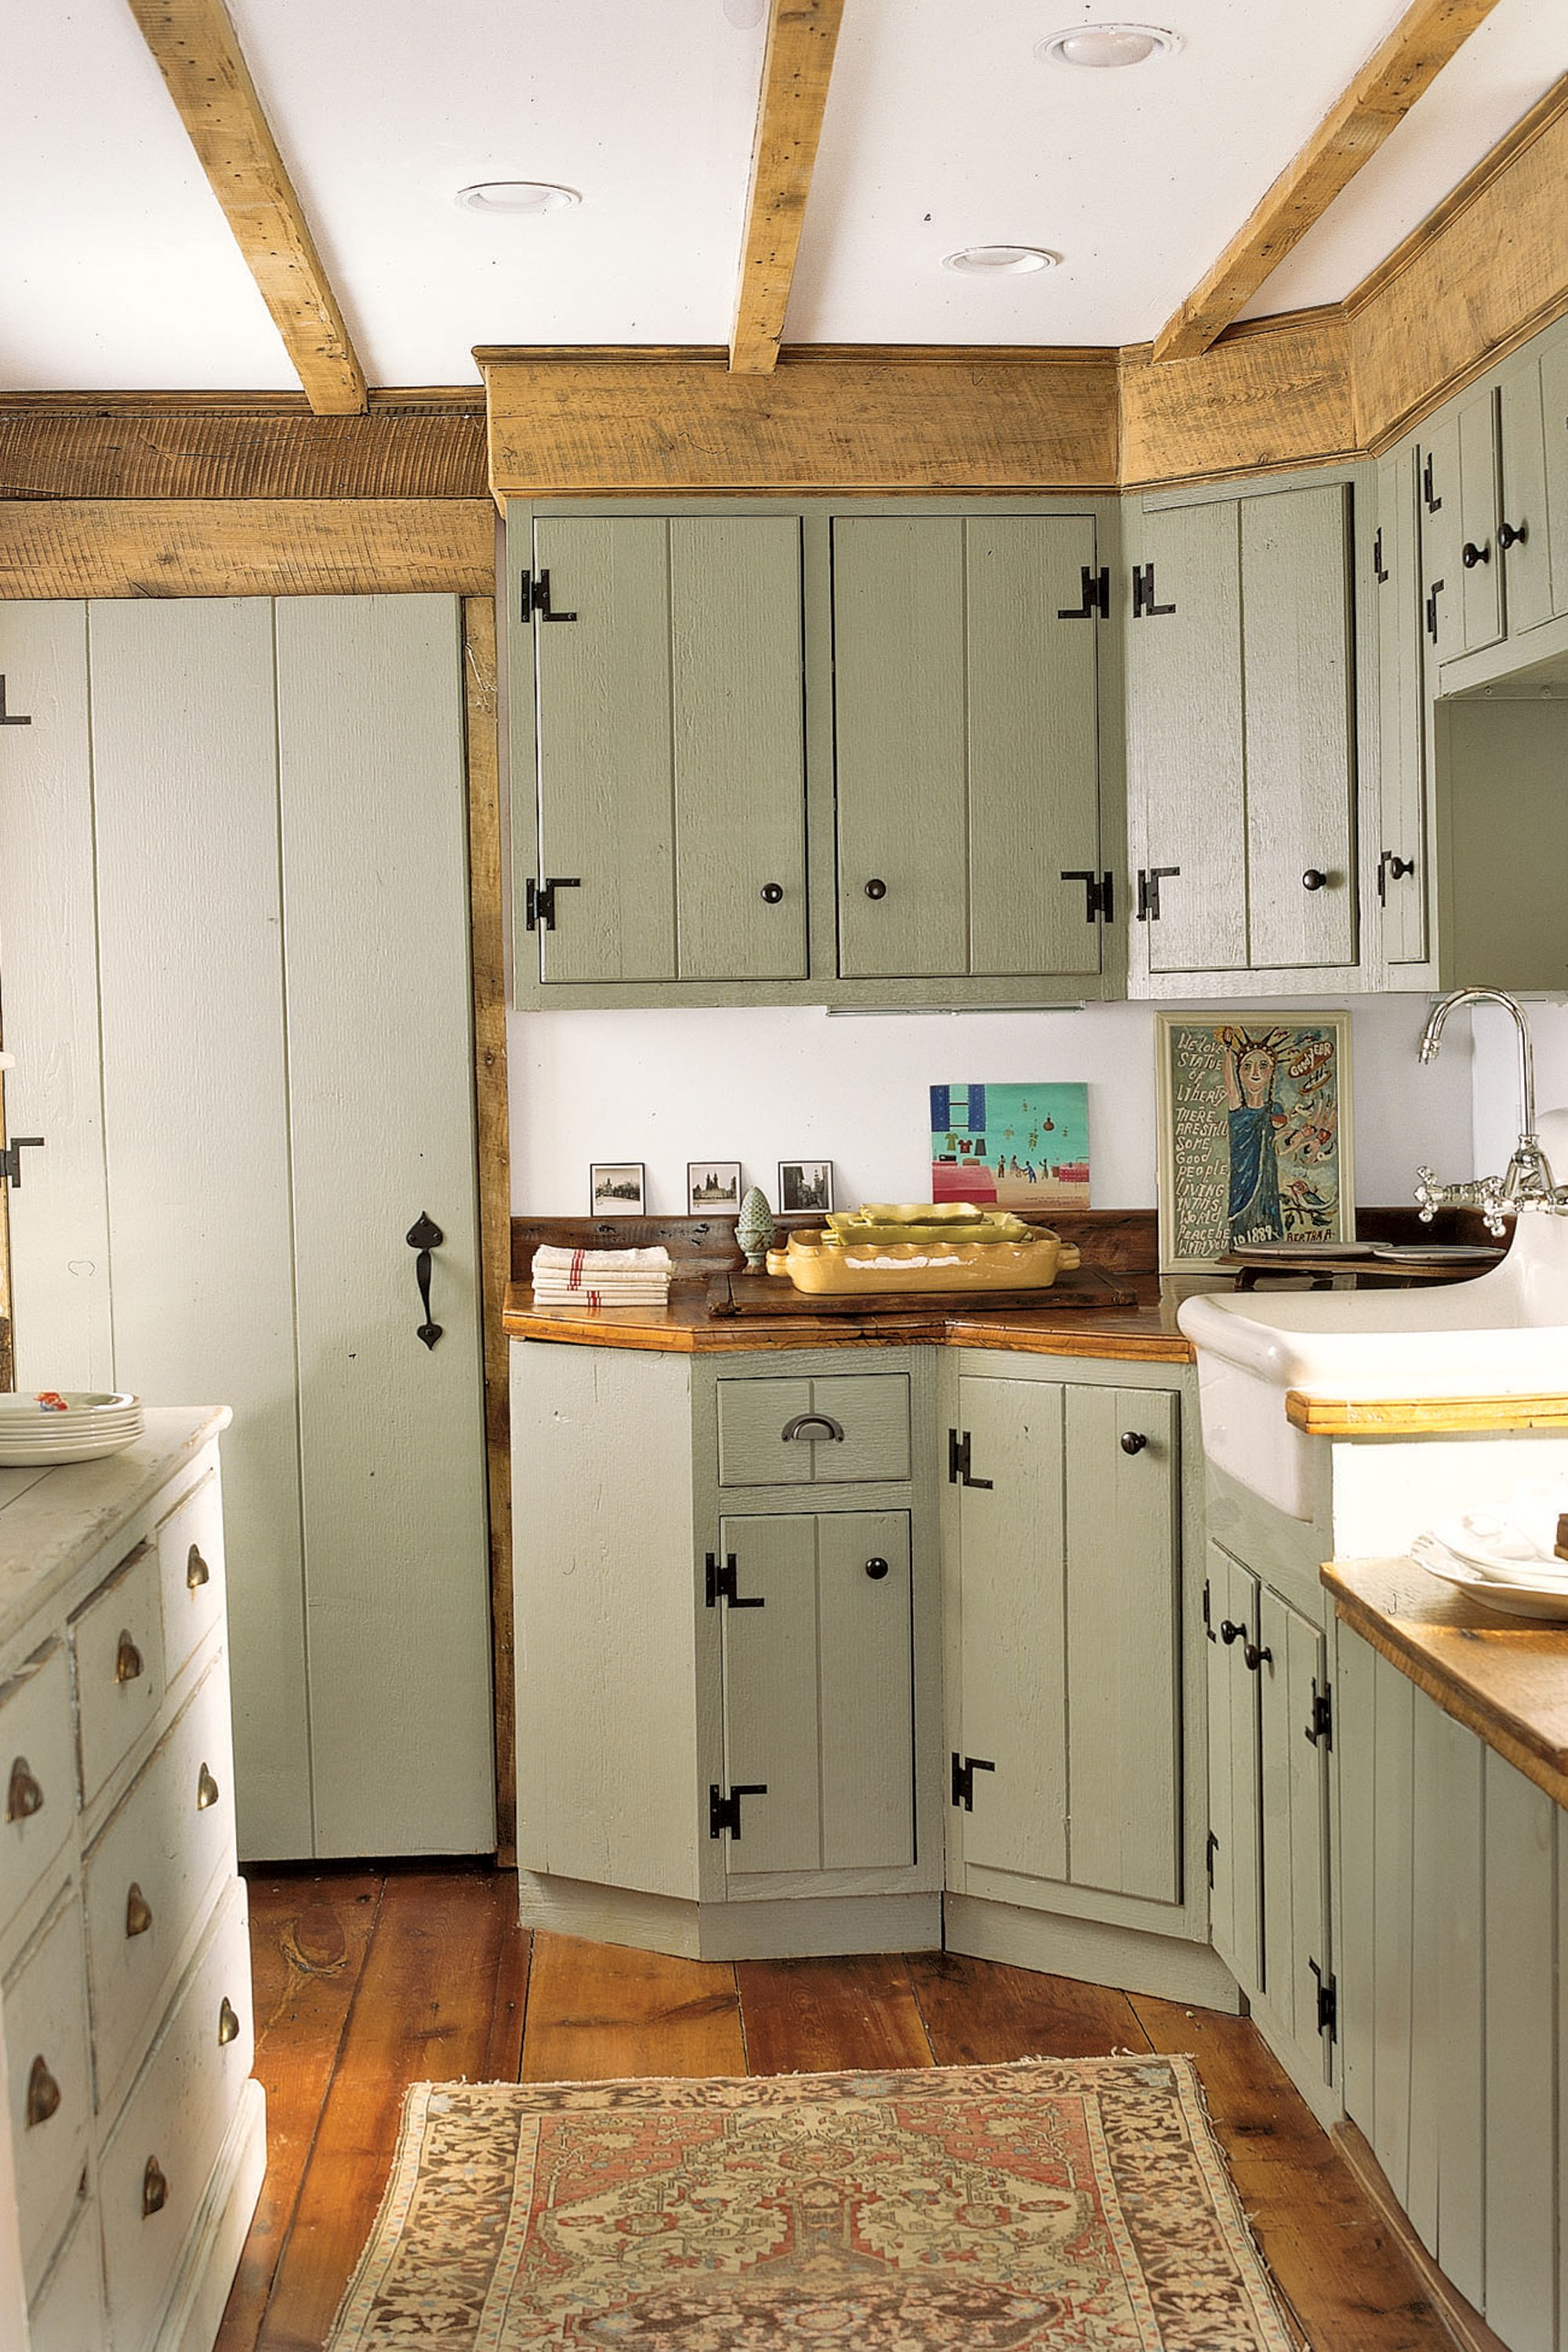 Farmhouse Kitchen Cabinets Contemporary Art For The Best Style Design Ideas Your New Remodel Green In This Old Are Outfitted To Look Like They Could Be Originals